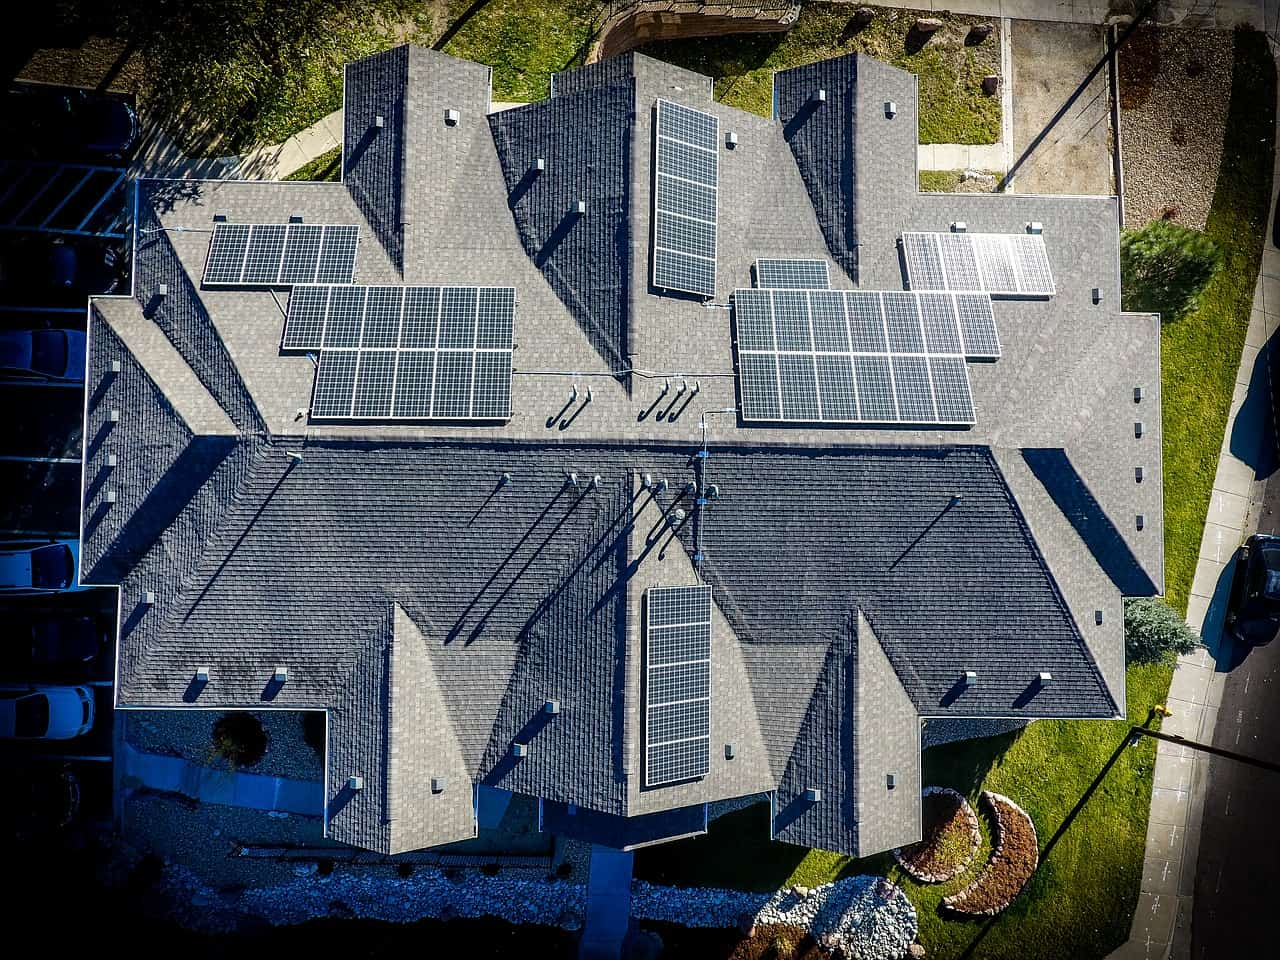 California Solar Panel Mandate in Residential Construction – A Texas Architect Responds